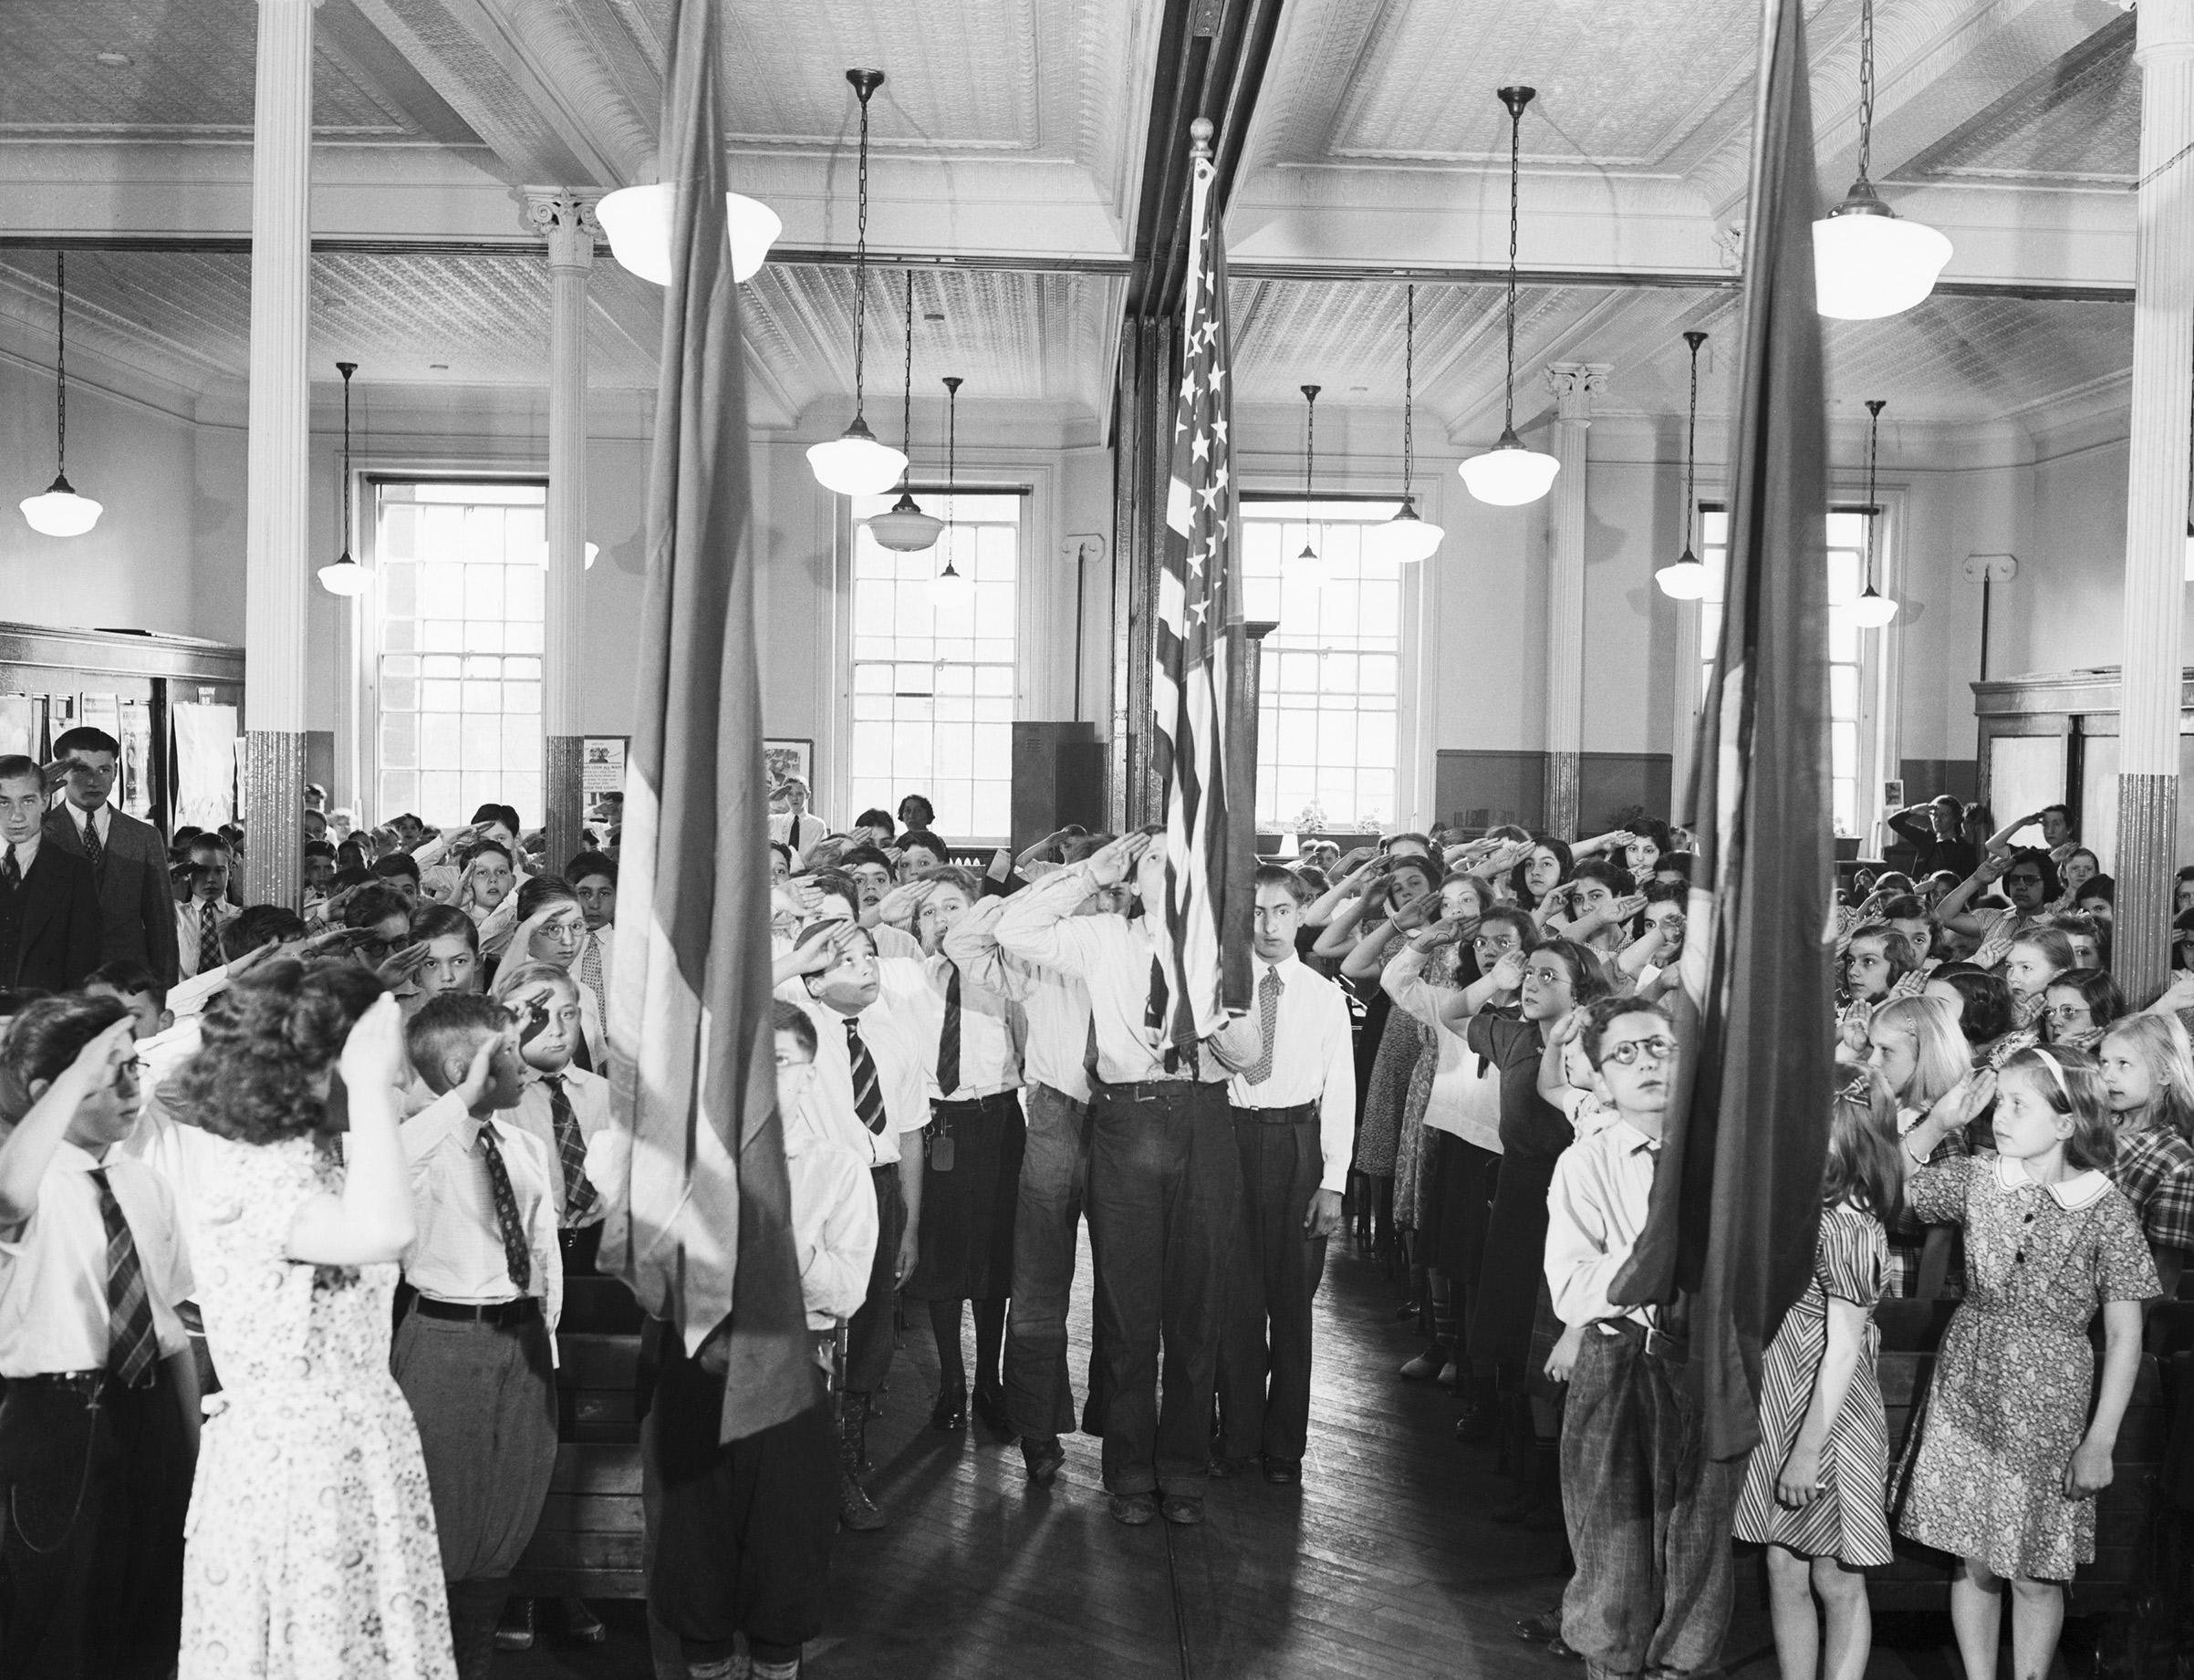 Students at P.S. #73 reciting the 'Pledge of Allegiance' on Jun. 1, 1938, in New York, N.Y.